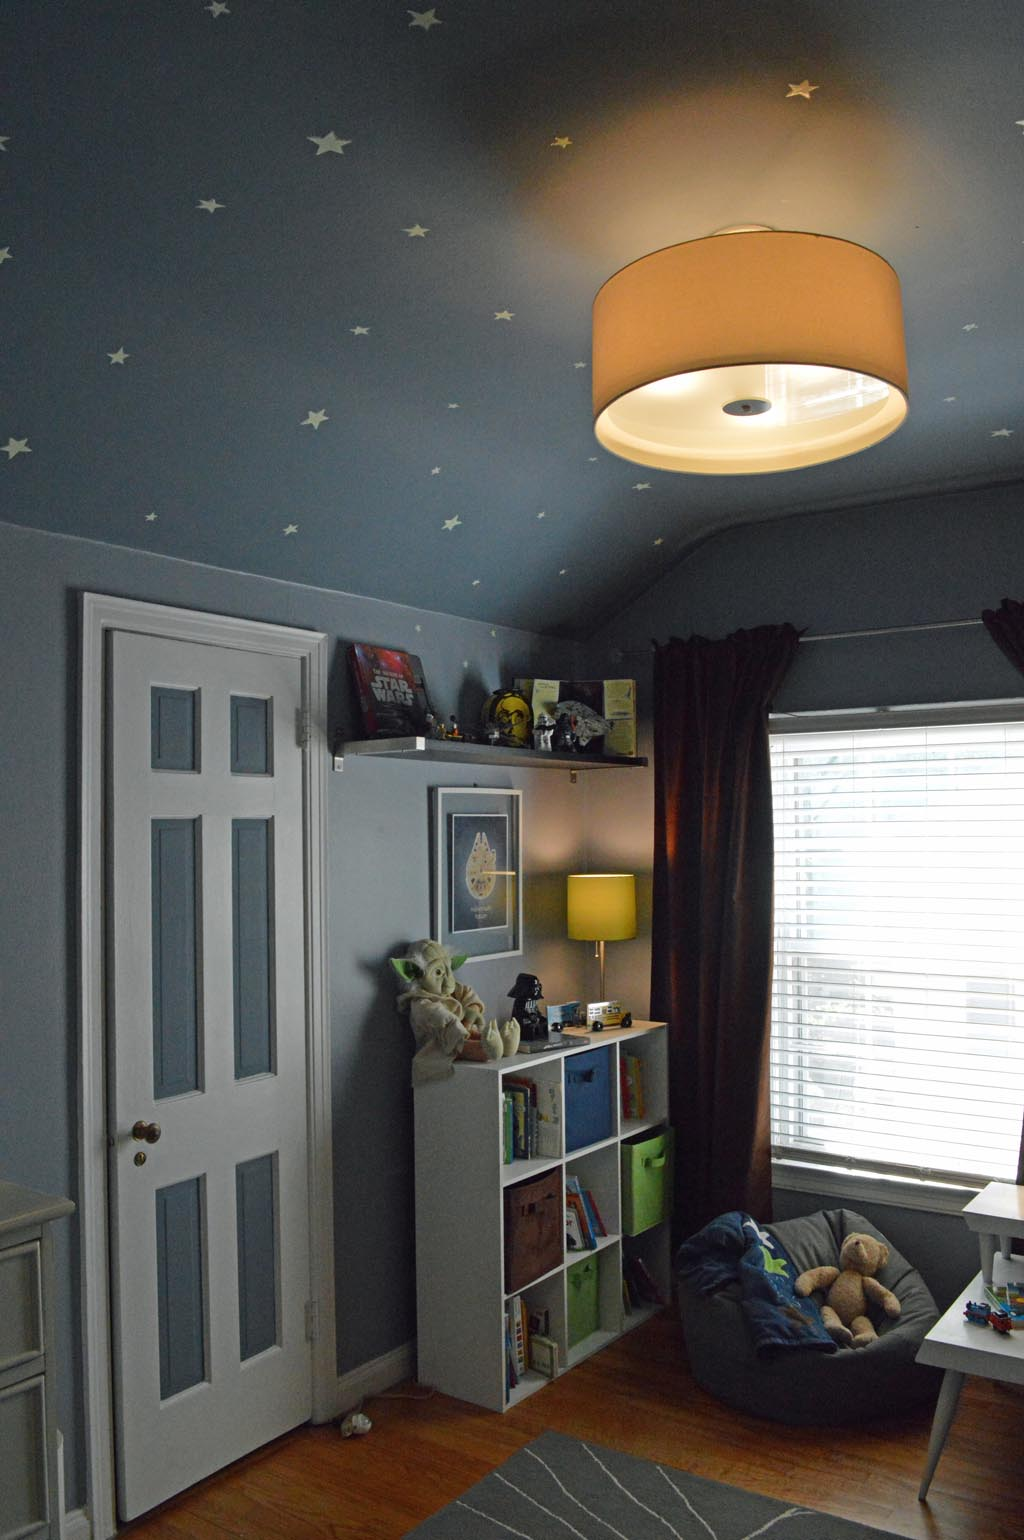 Star Wars Ceiling Light Fixture